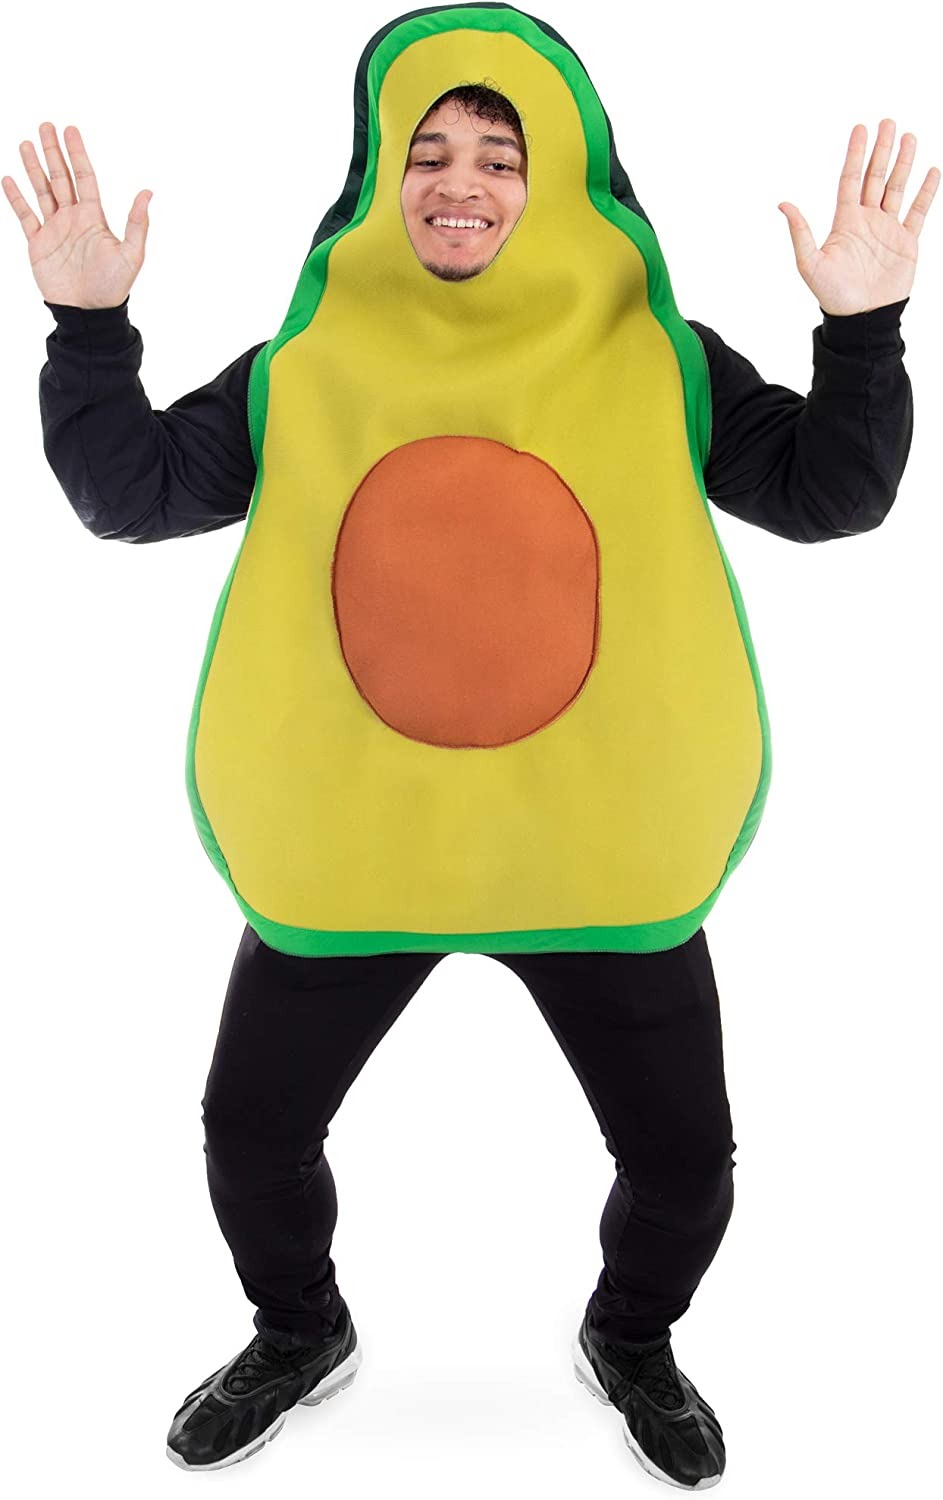 Amazing Avocado Halloween Costume - Funny Unisex Food Costumes for Adults Green